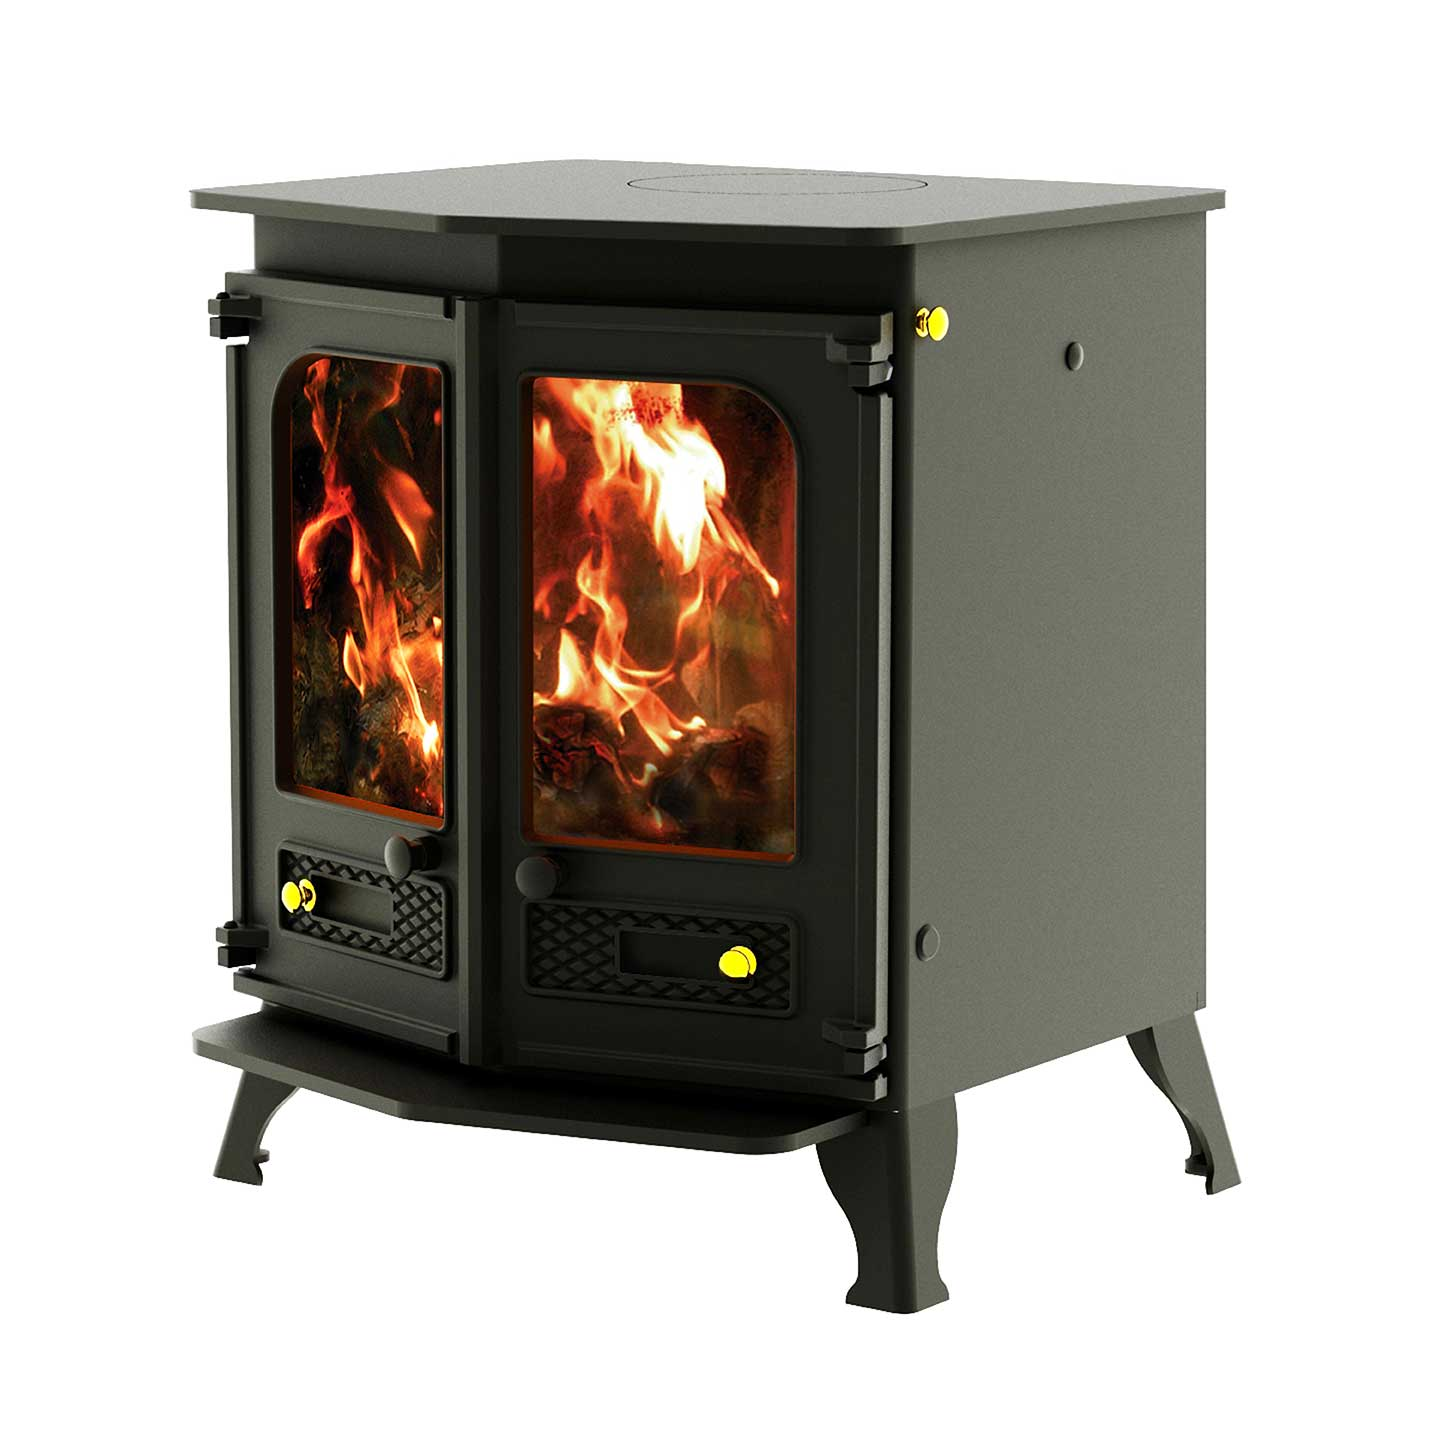 charnwood country 8 multi fuel 8kw stove the stove site. Black Bedroom Furniture Sets. Home Design Ideas